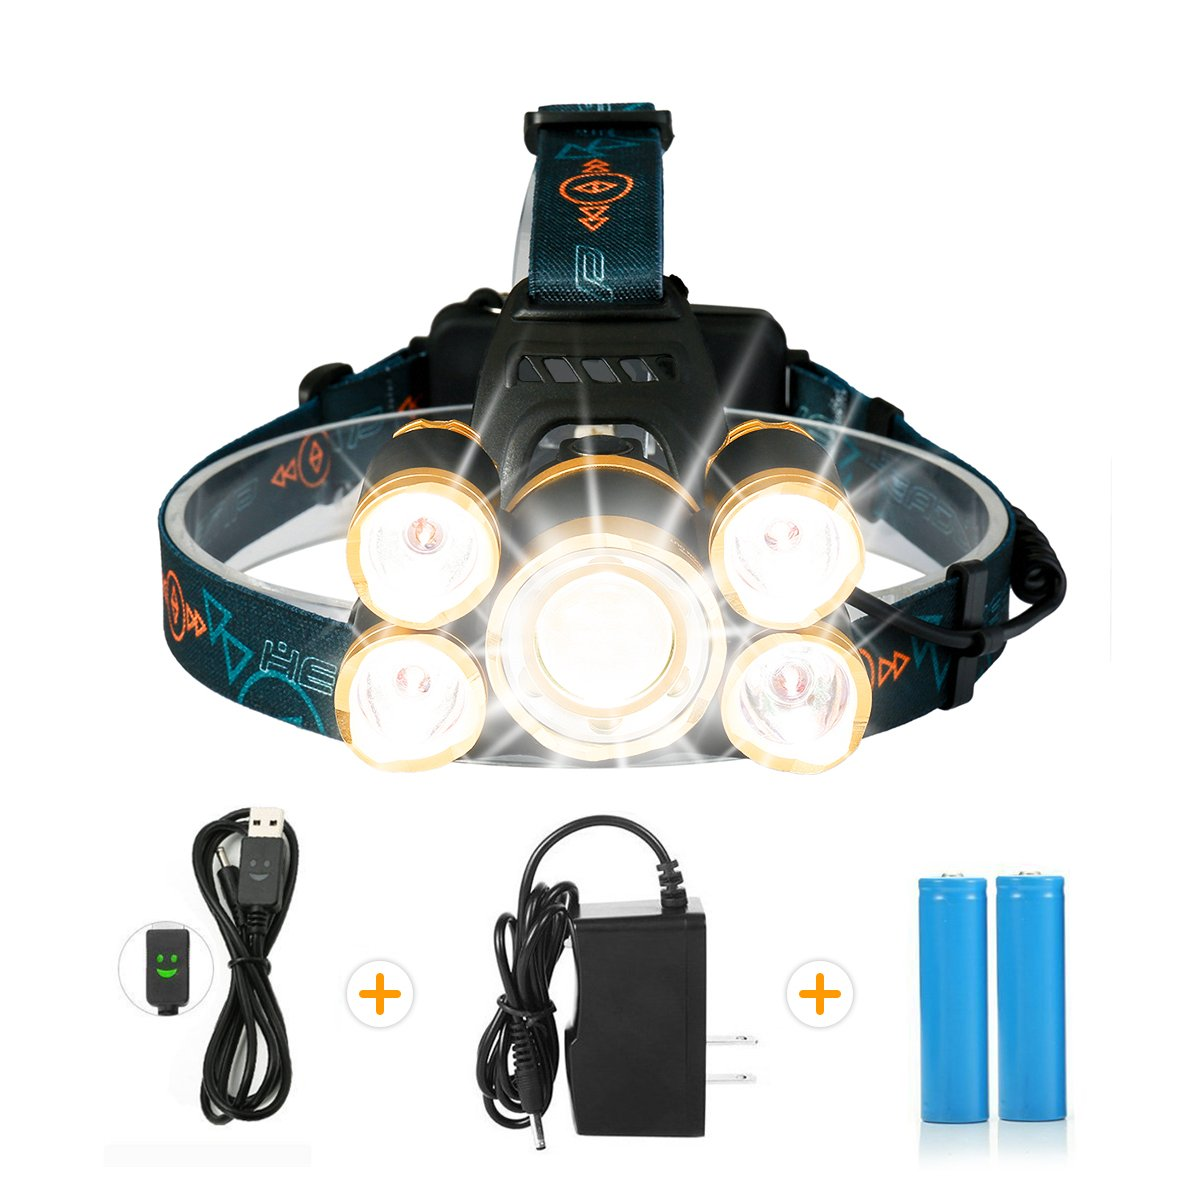 LED Headlamp,SGODDE Super Bright 5 Mode 8000 Lumens Zoomable Headlight -Rechargeable 5 LED Waterproof Head Torchlight for Outdoor Hiking Camping Hunting Fishing Running(Changer&Batteries included)